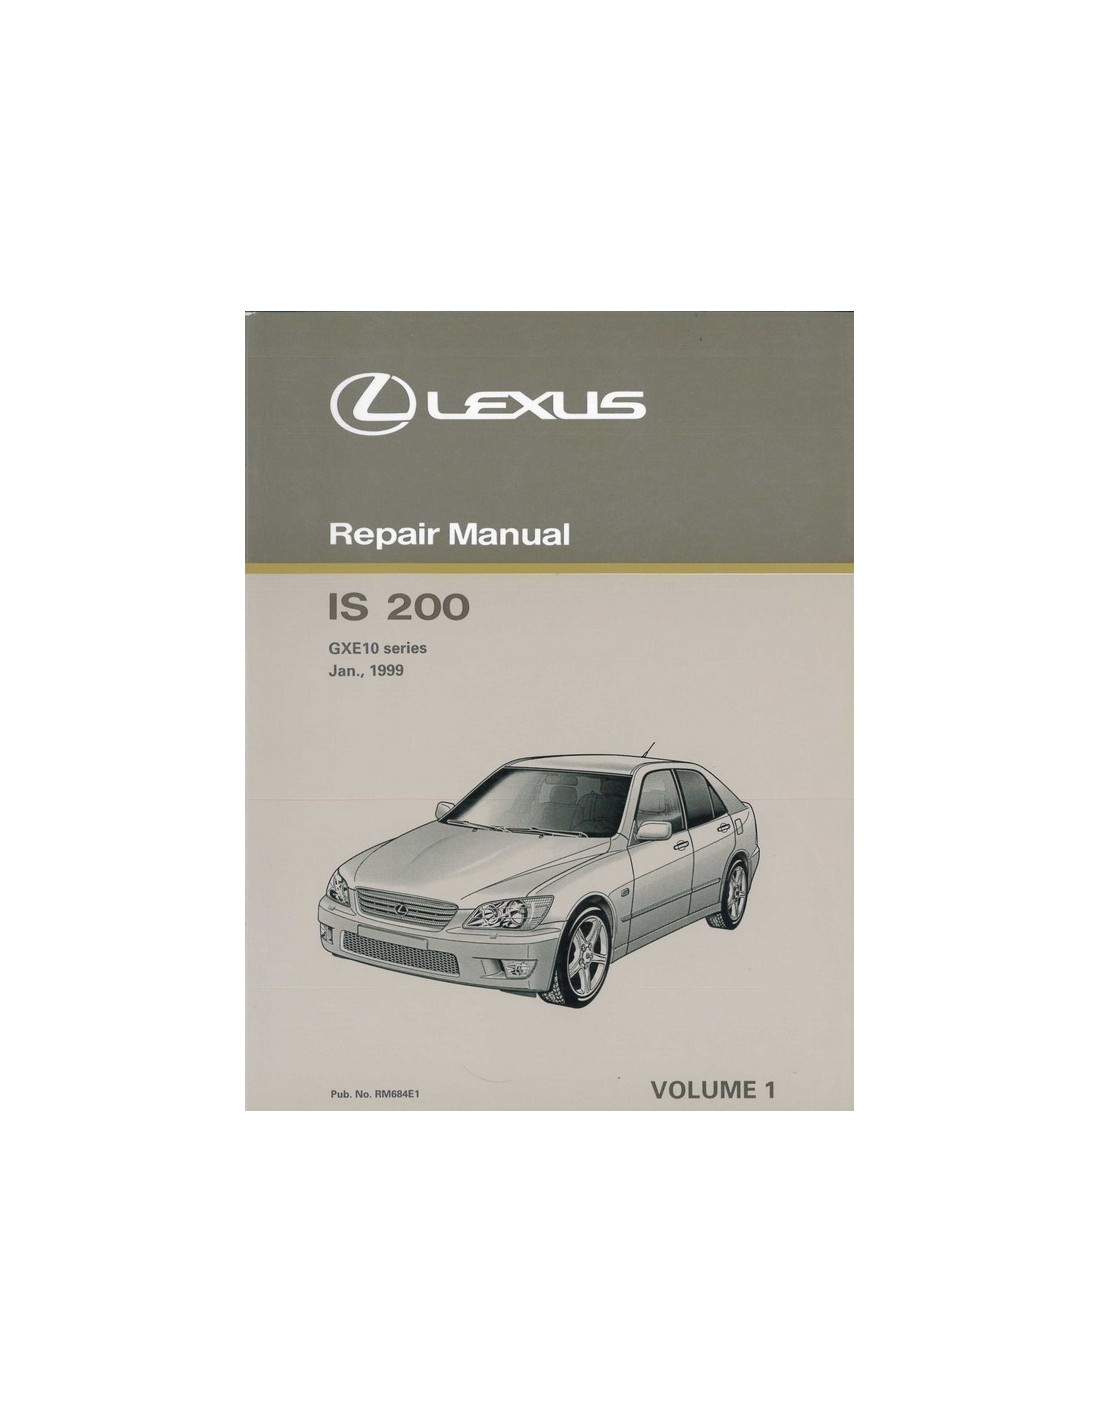 1999 lexus is 200 chassis body repair manual english rh autolit eu Lexus IS300 2000 Lexus Is200